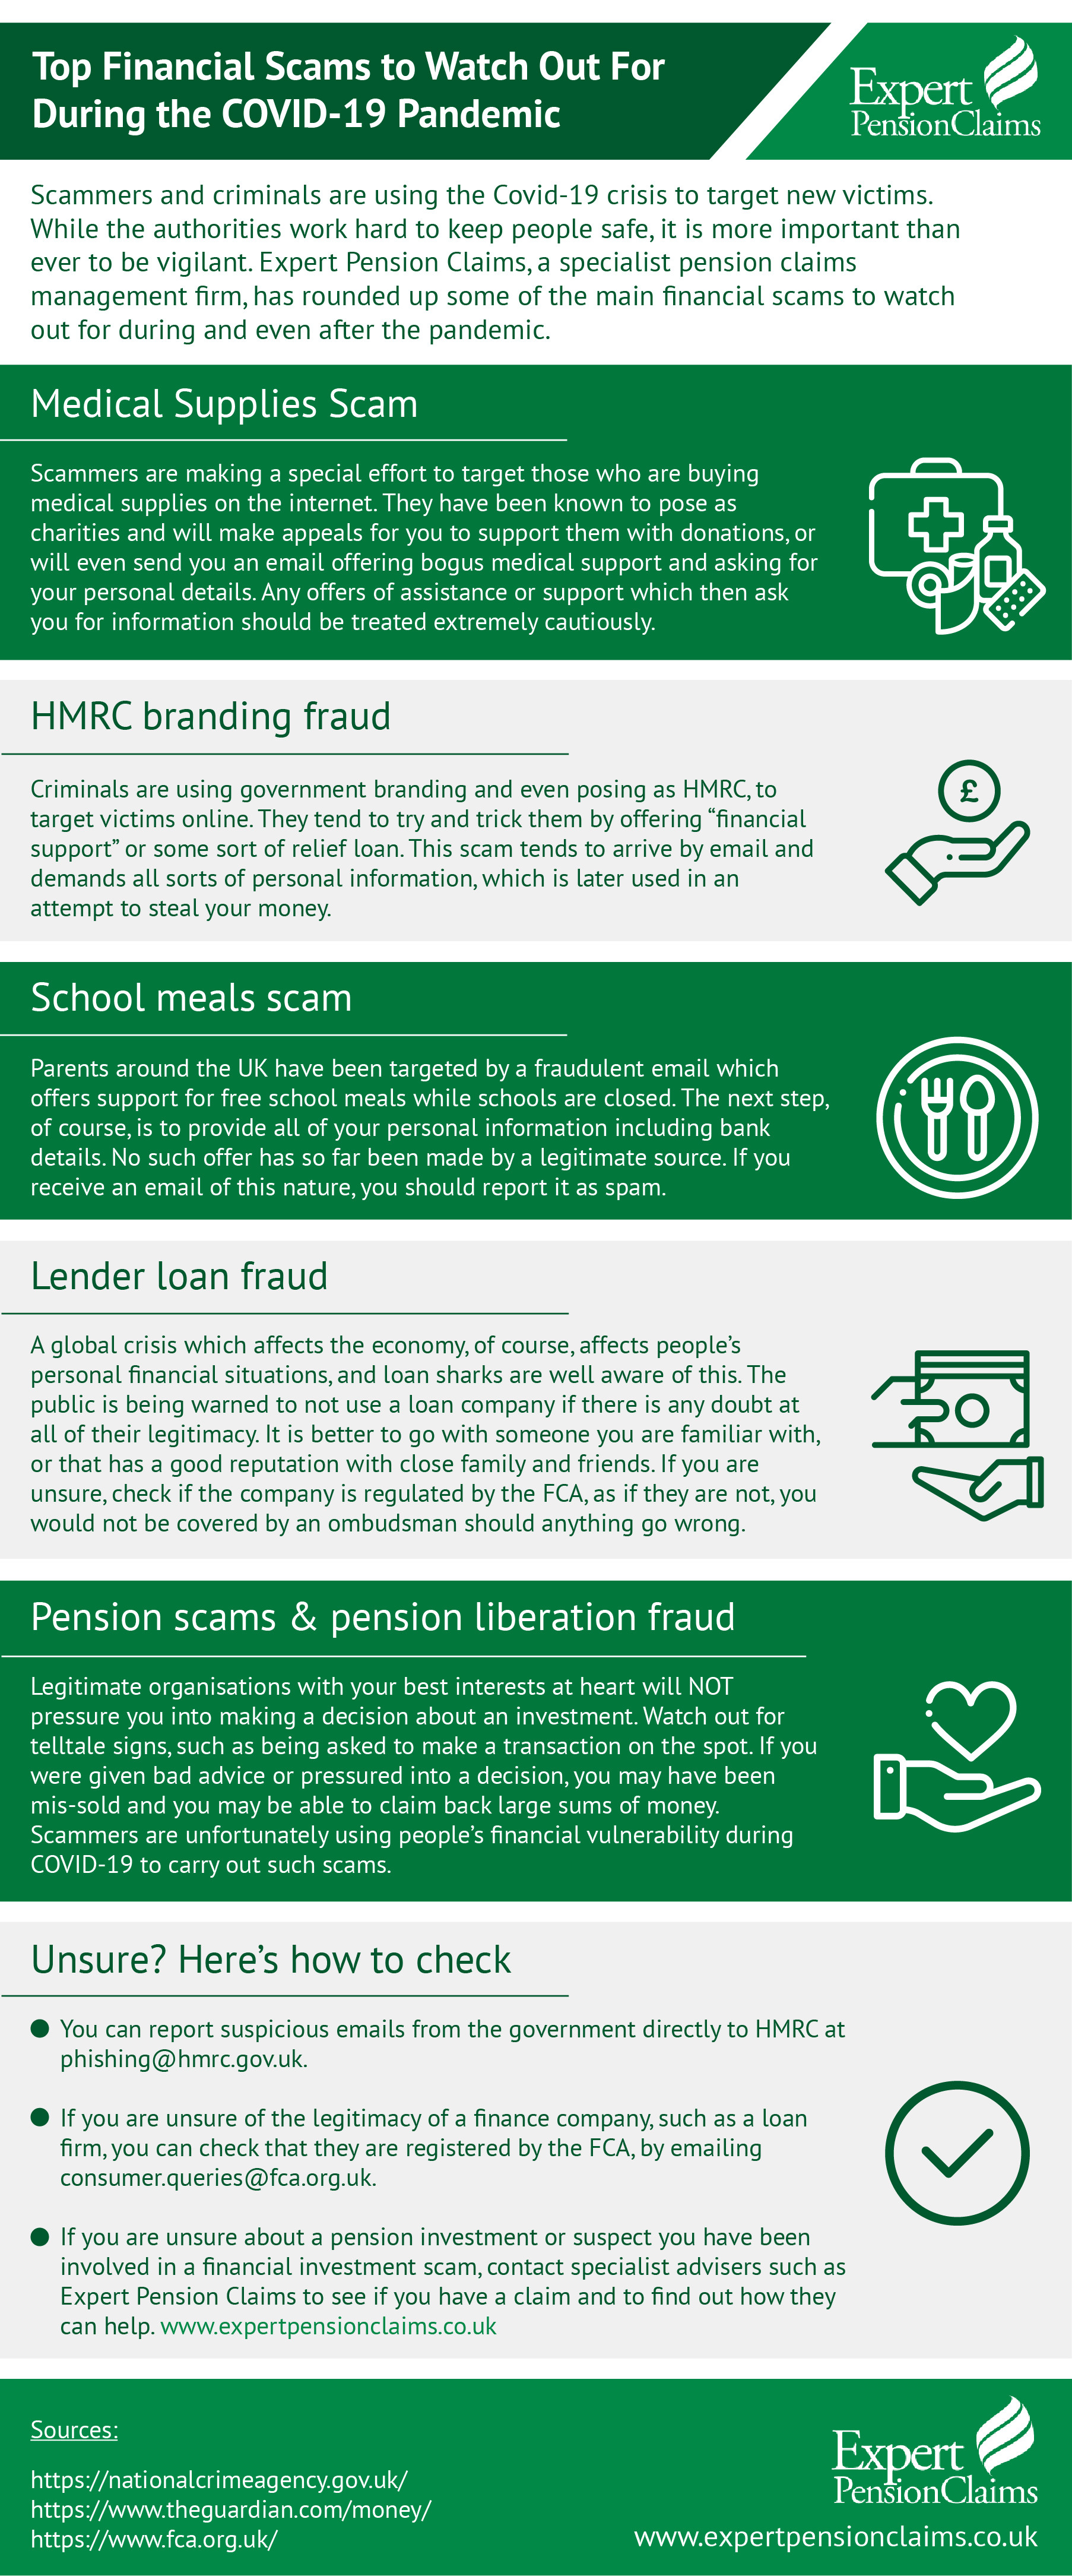 Top Financial Scams to Watch Out For During COVID-19